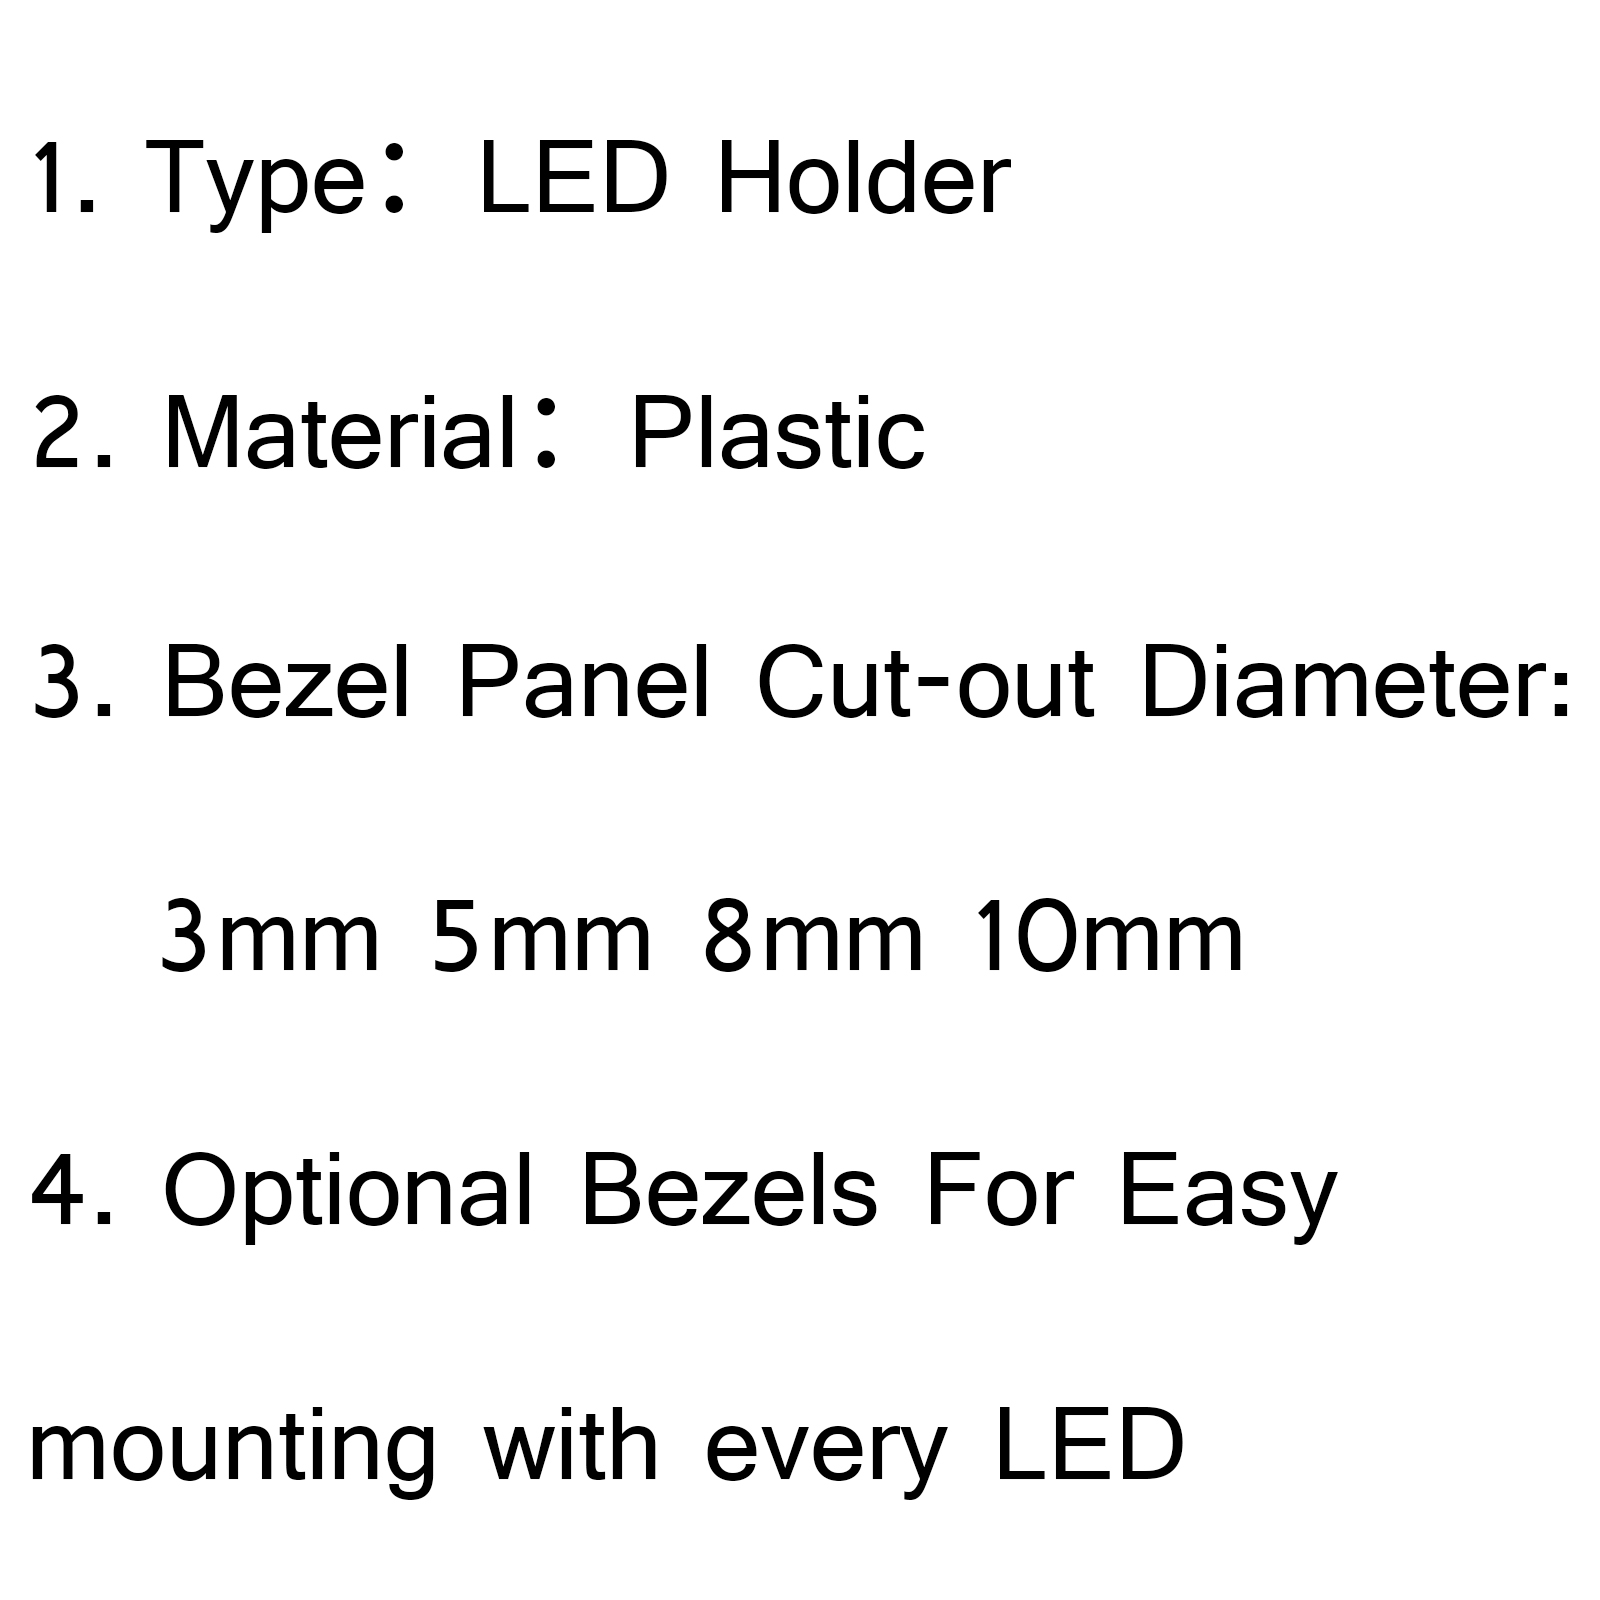 Pcs 8mm Led Holder Light Lamp Diode Plastic Bezel